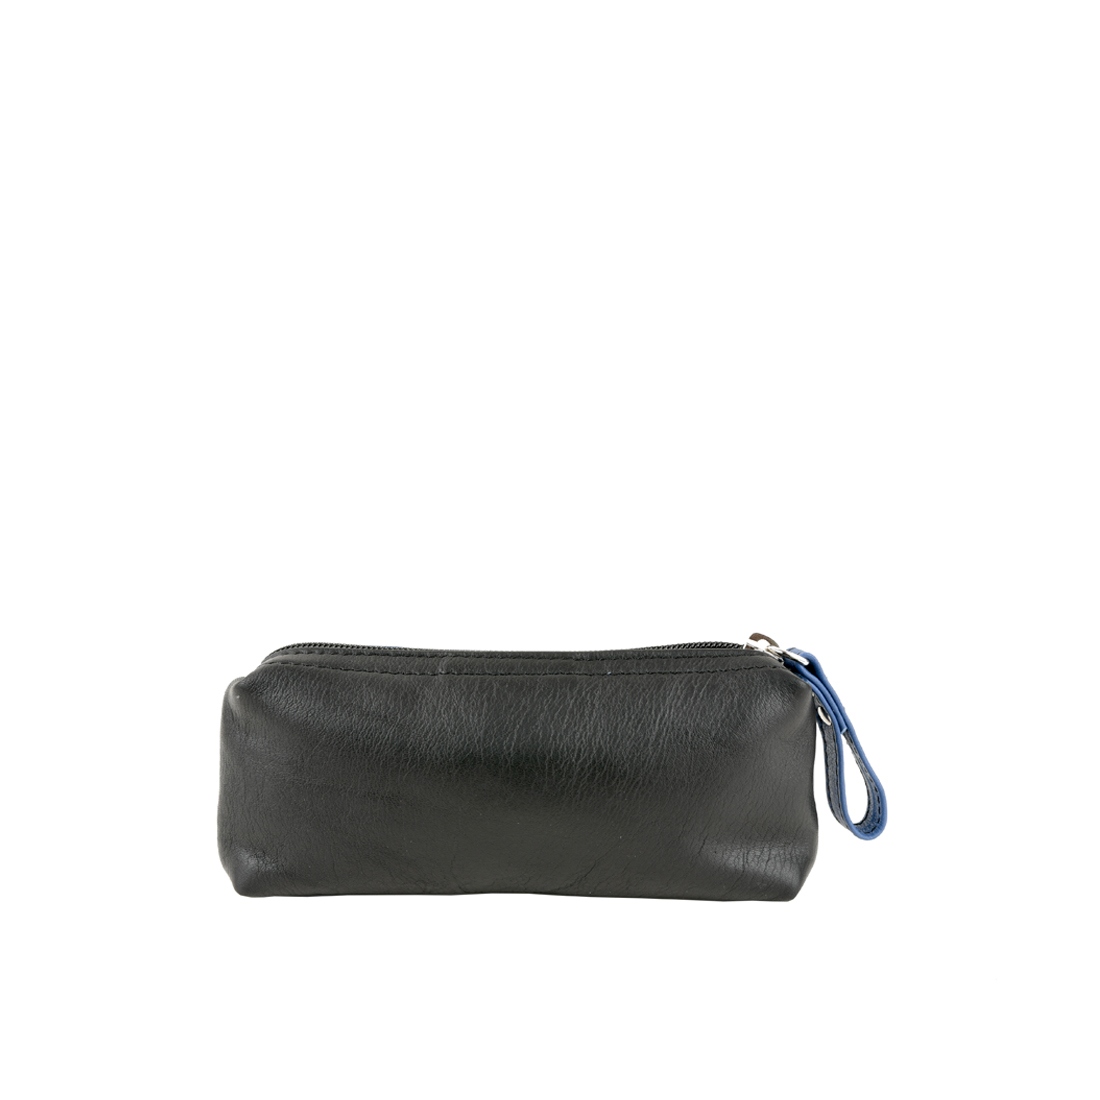 Make Up Bag In Blue